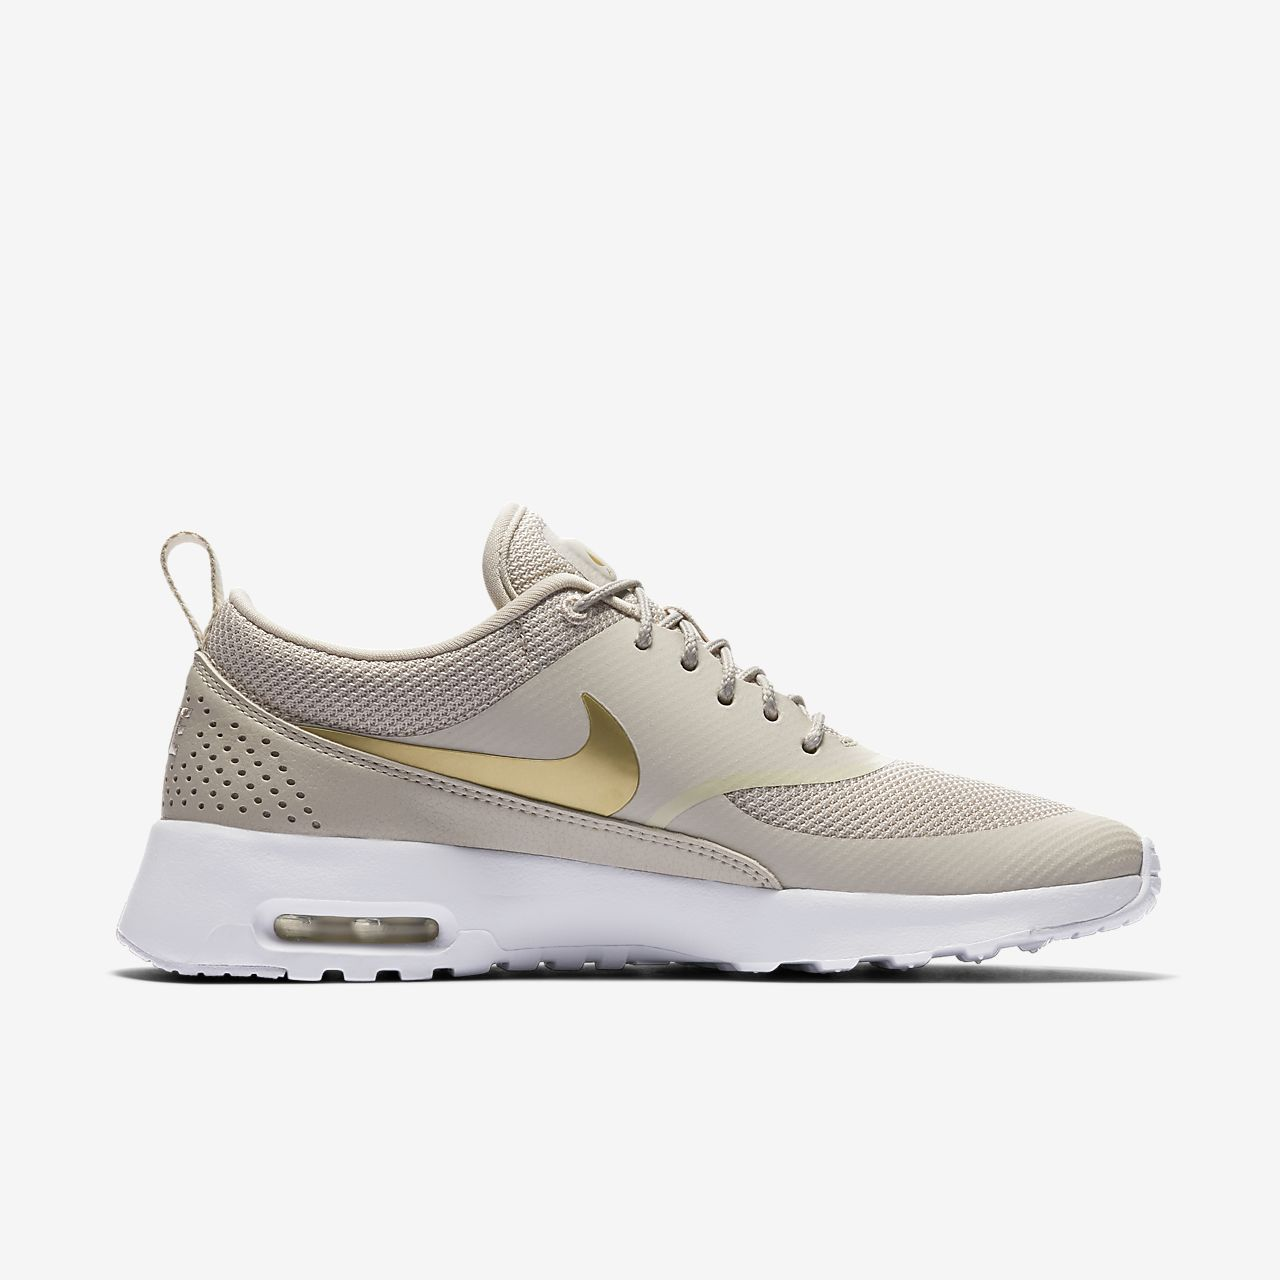 Nike Air Max Thea : Nike Sneakers Online at Best Prices